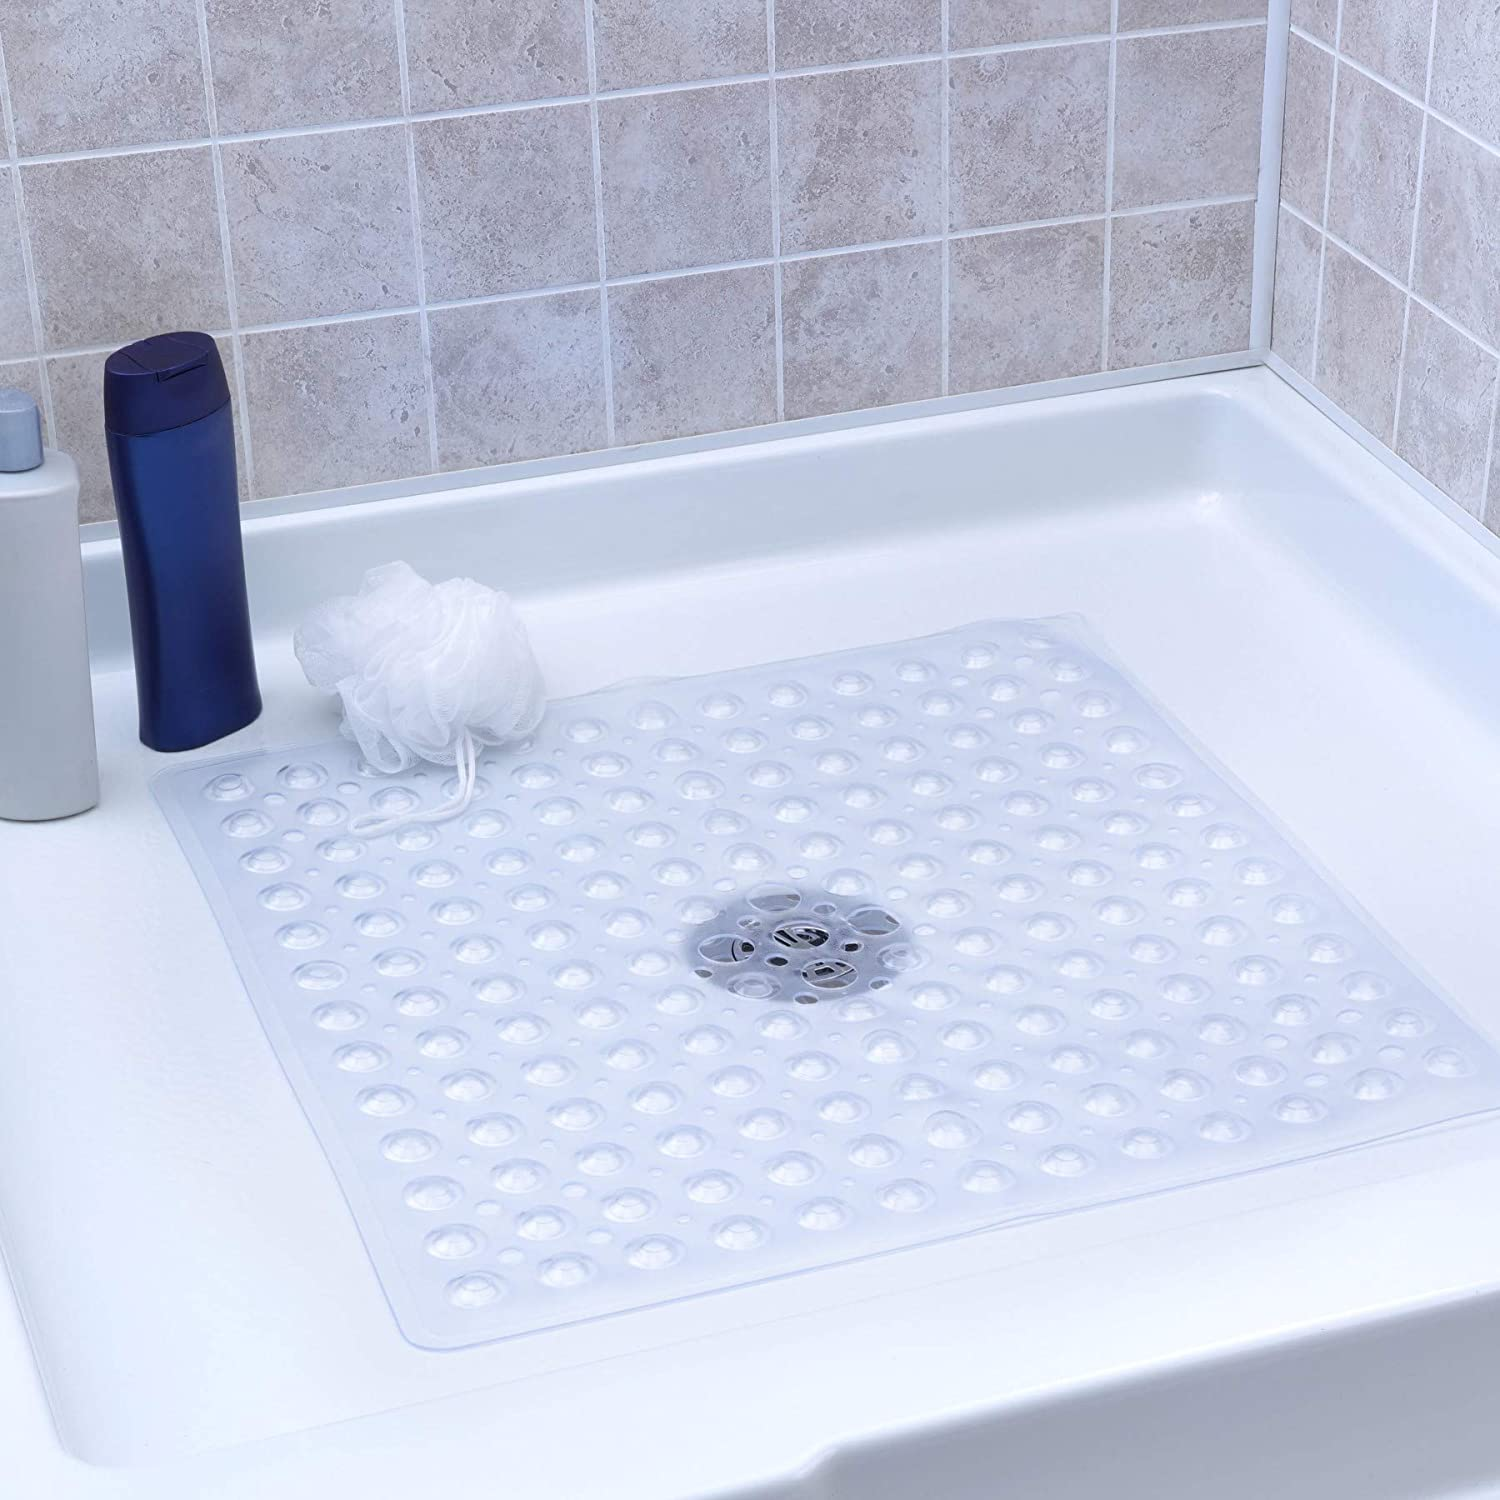 SlipX Solutions Clear Square Shower Stall Mat Provides Reliable Slip-Resistance (21